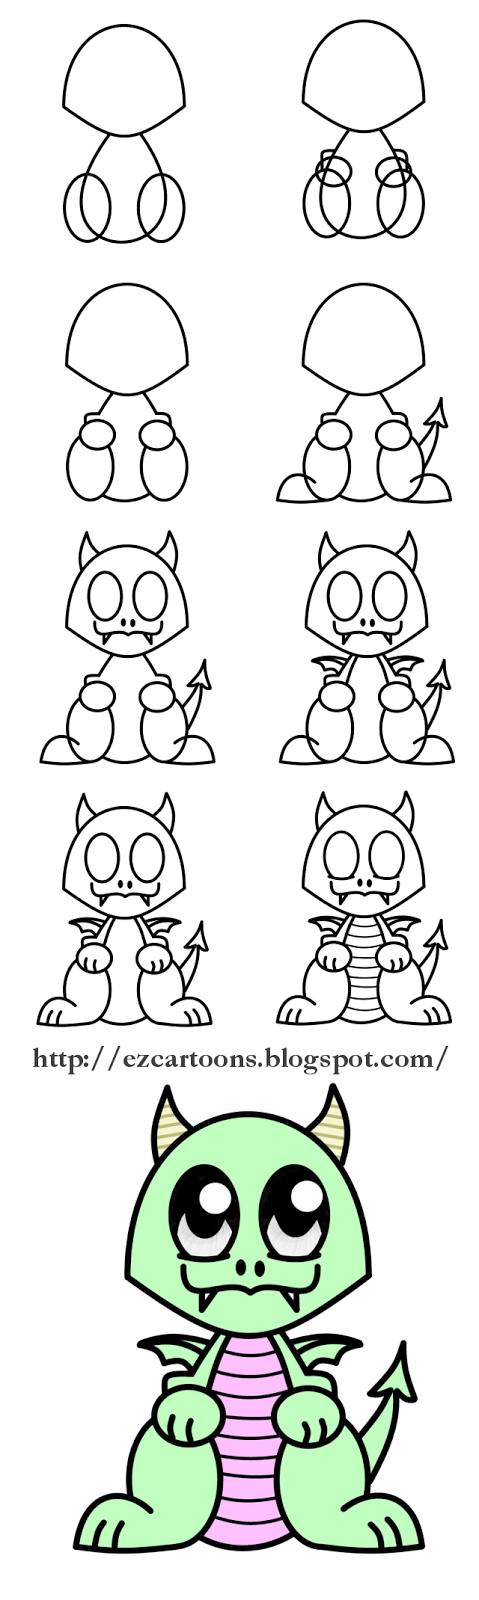 Easy To Draw Cartoons: How To Draw A Dragon